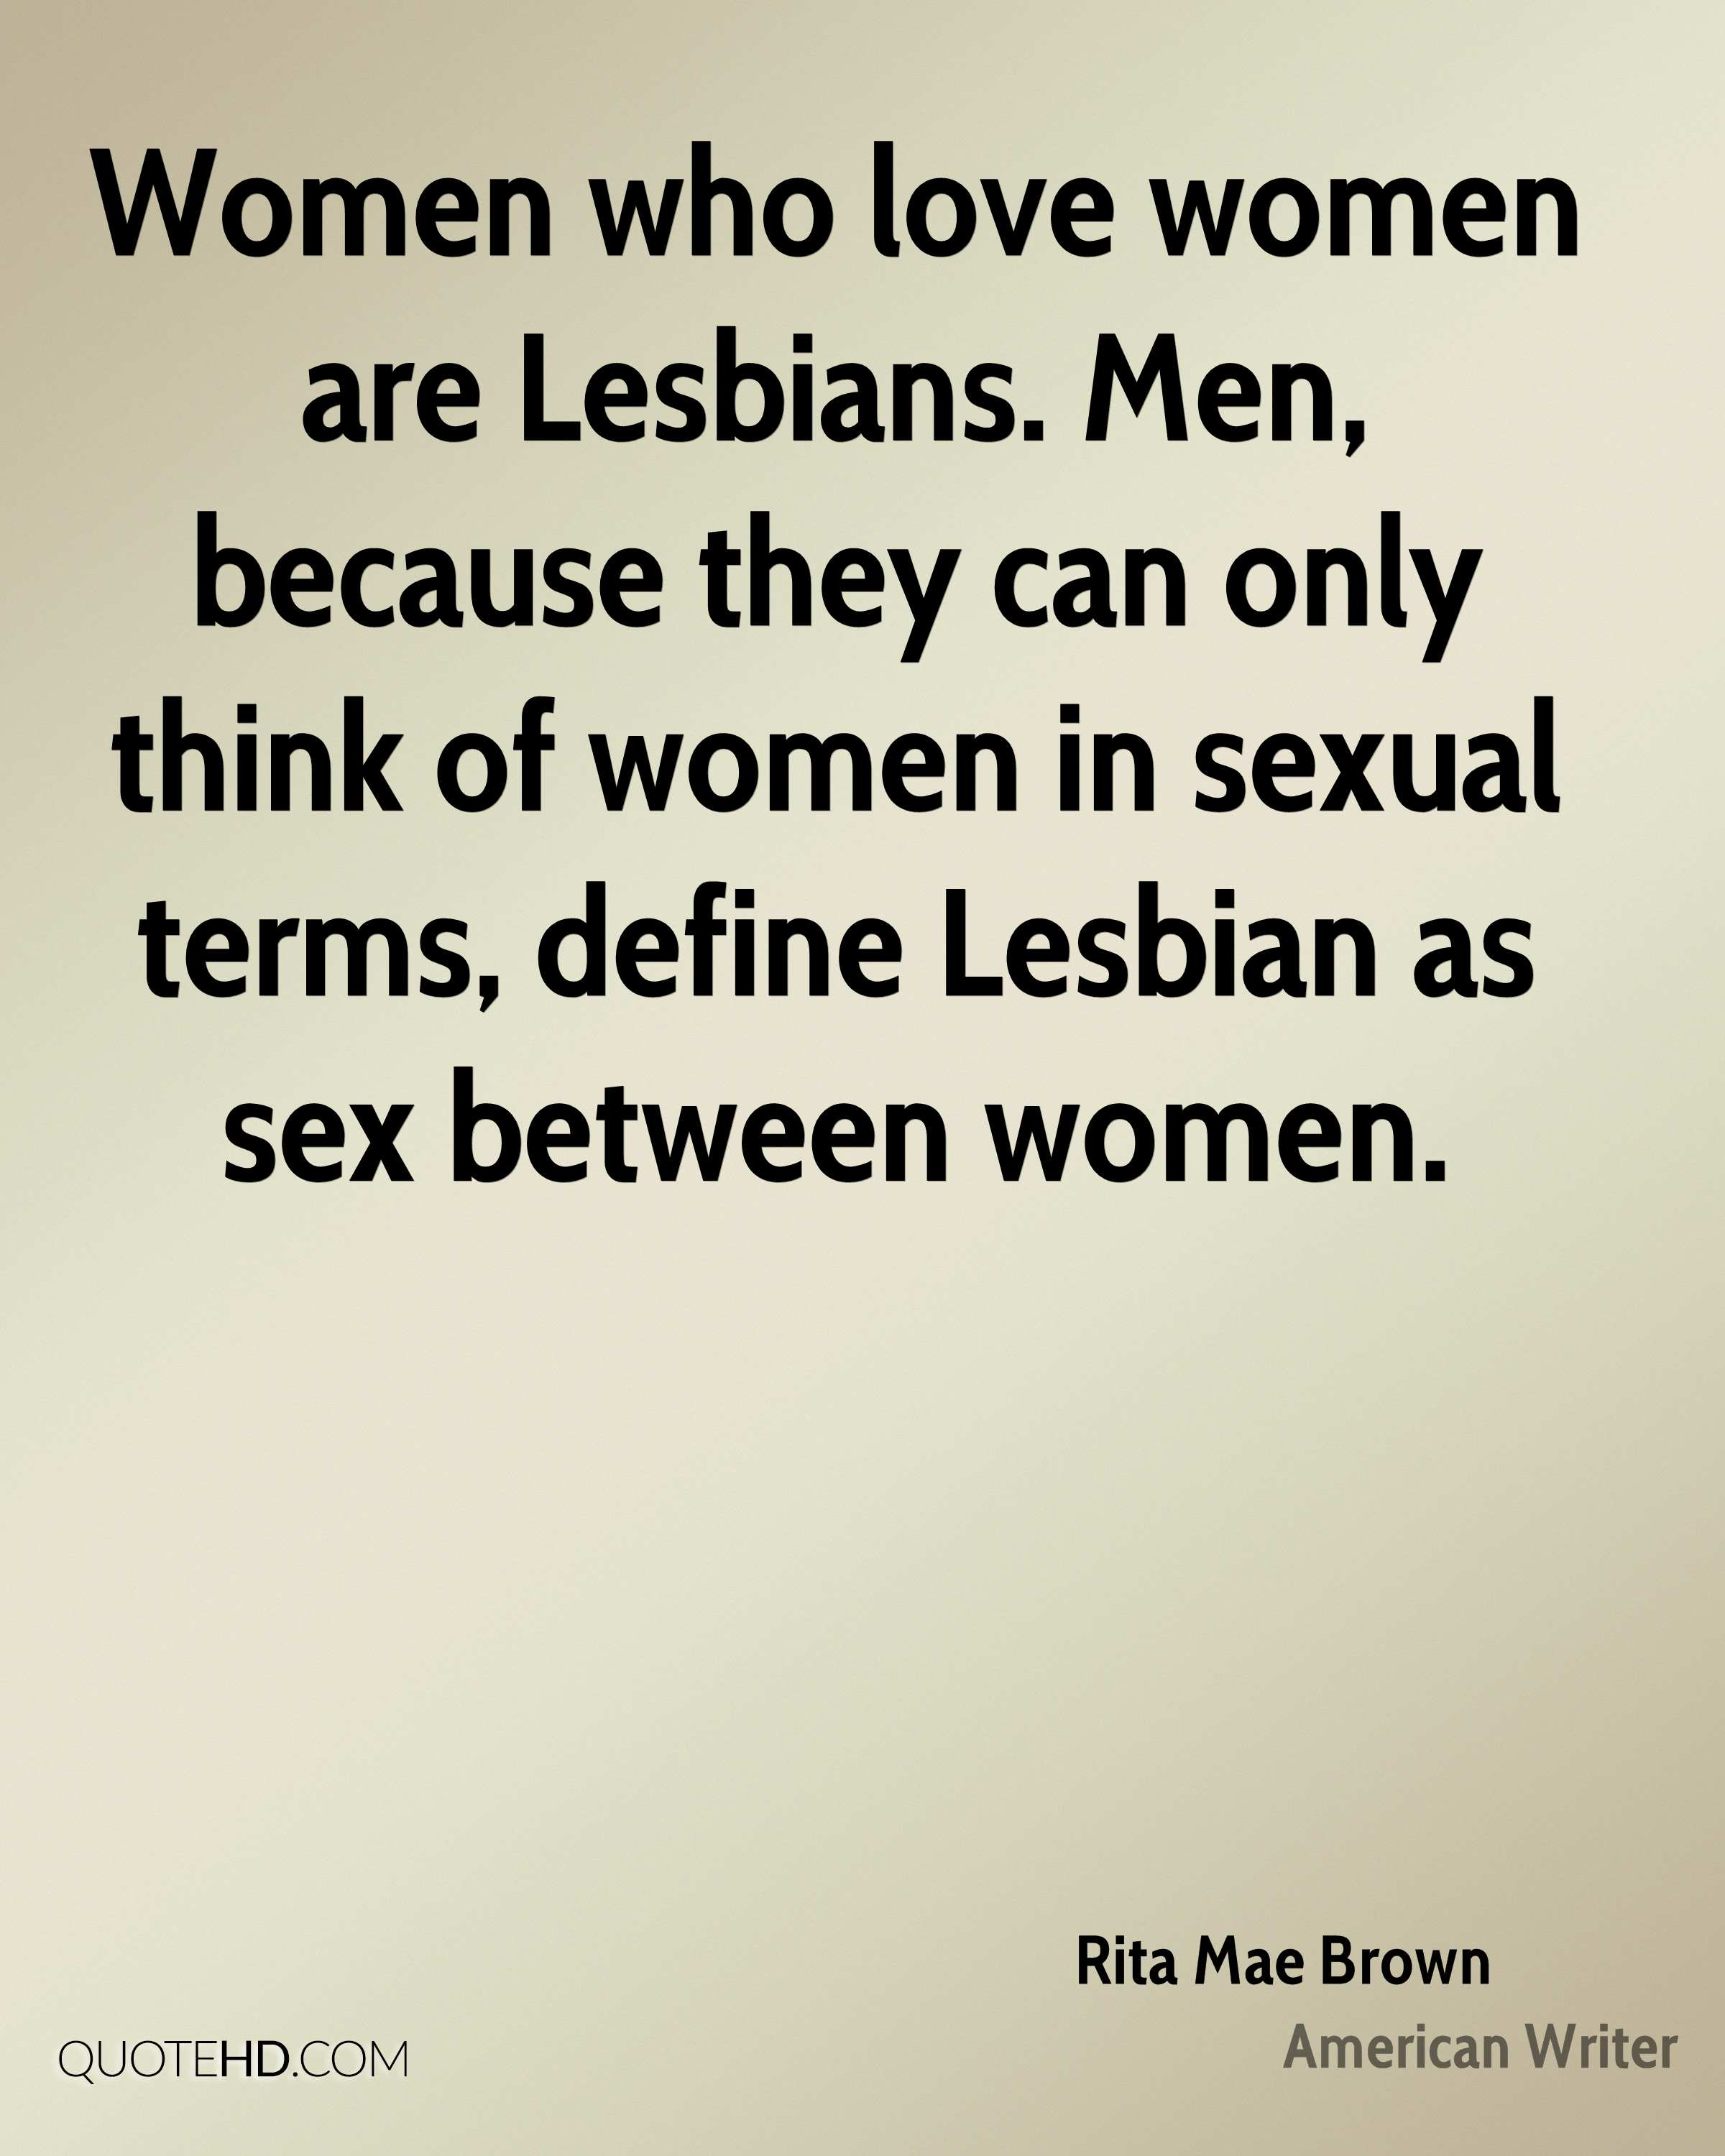 Lesbian Quotes About Love Rita Mae Brown Women Quotes  Quotehd